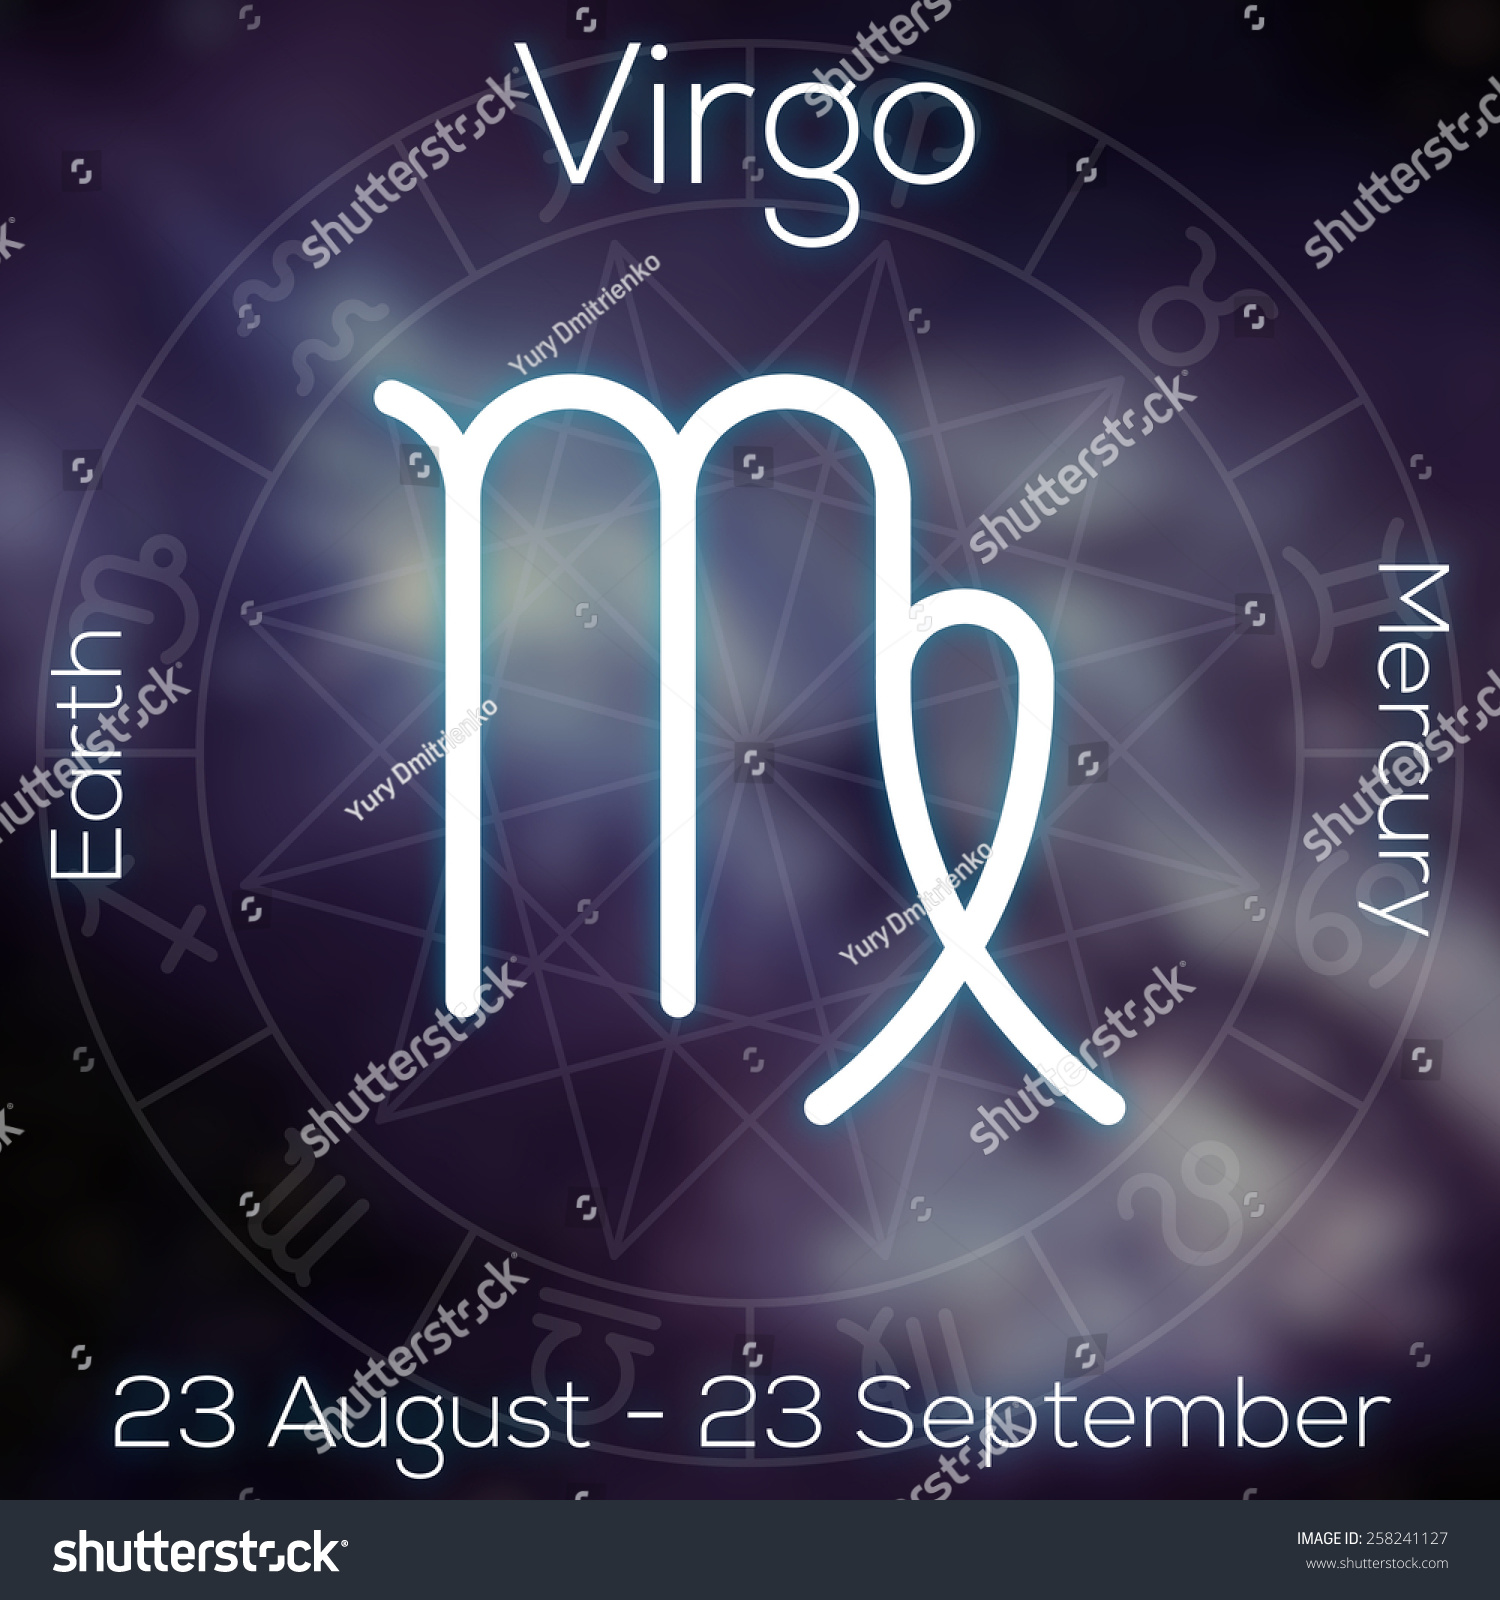 What Are The Dates Of A Virgo